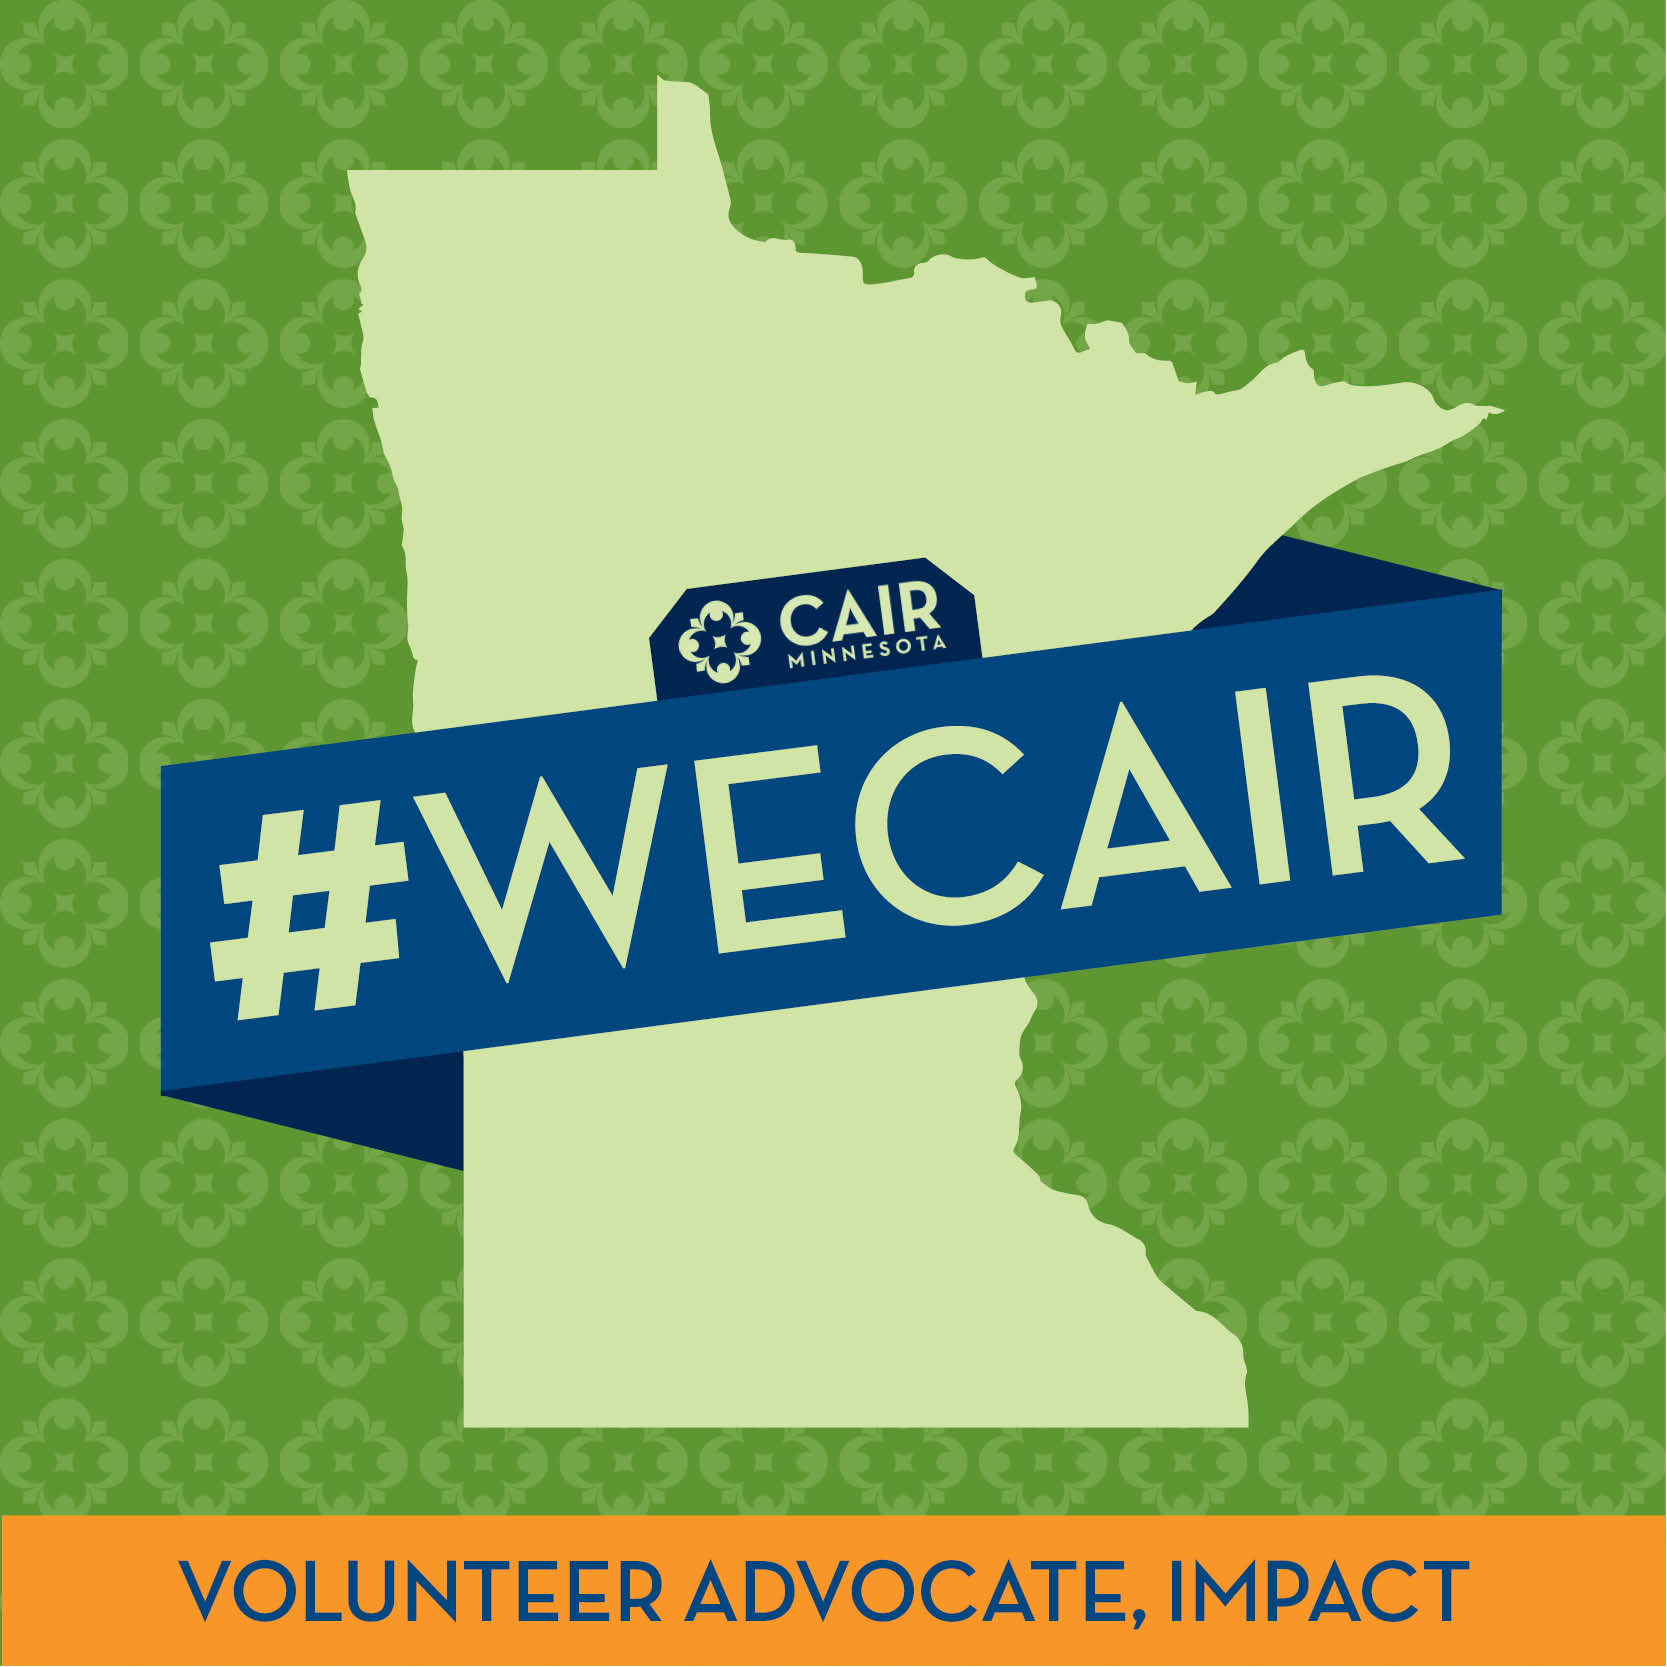 Join the @WECAIR Team